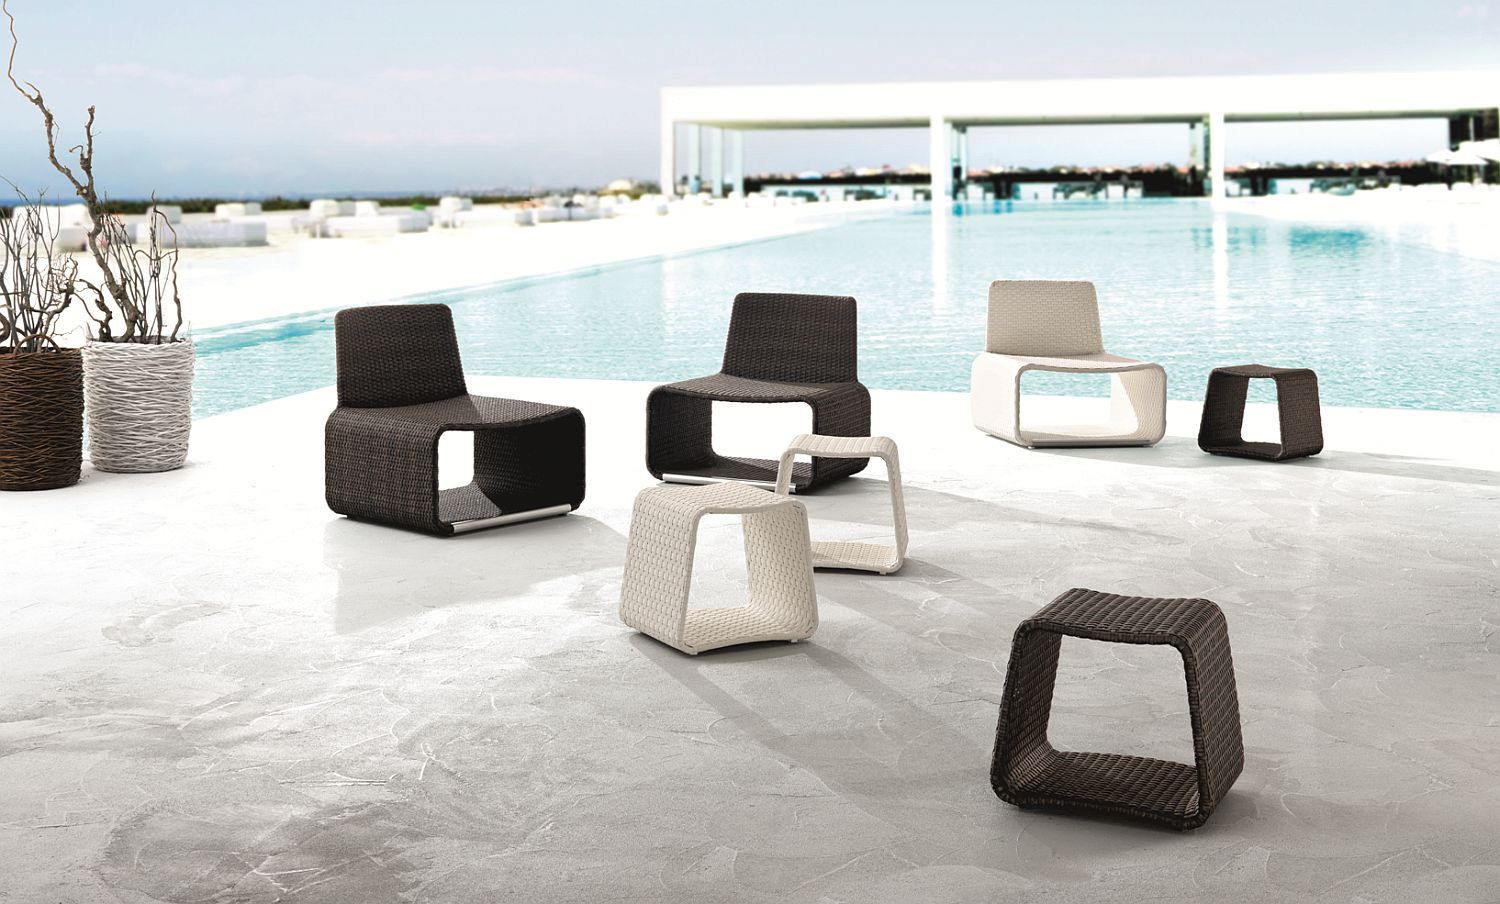 Outdoor chairs and side tables in black and white